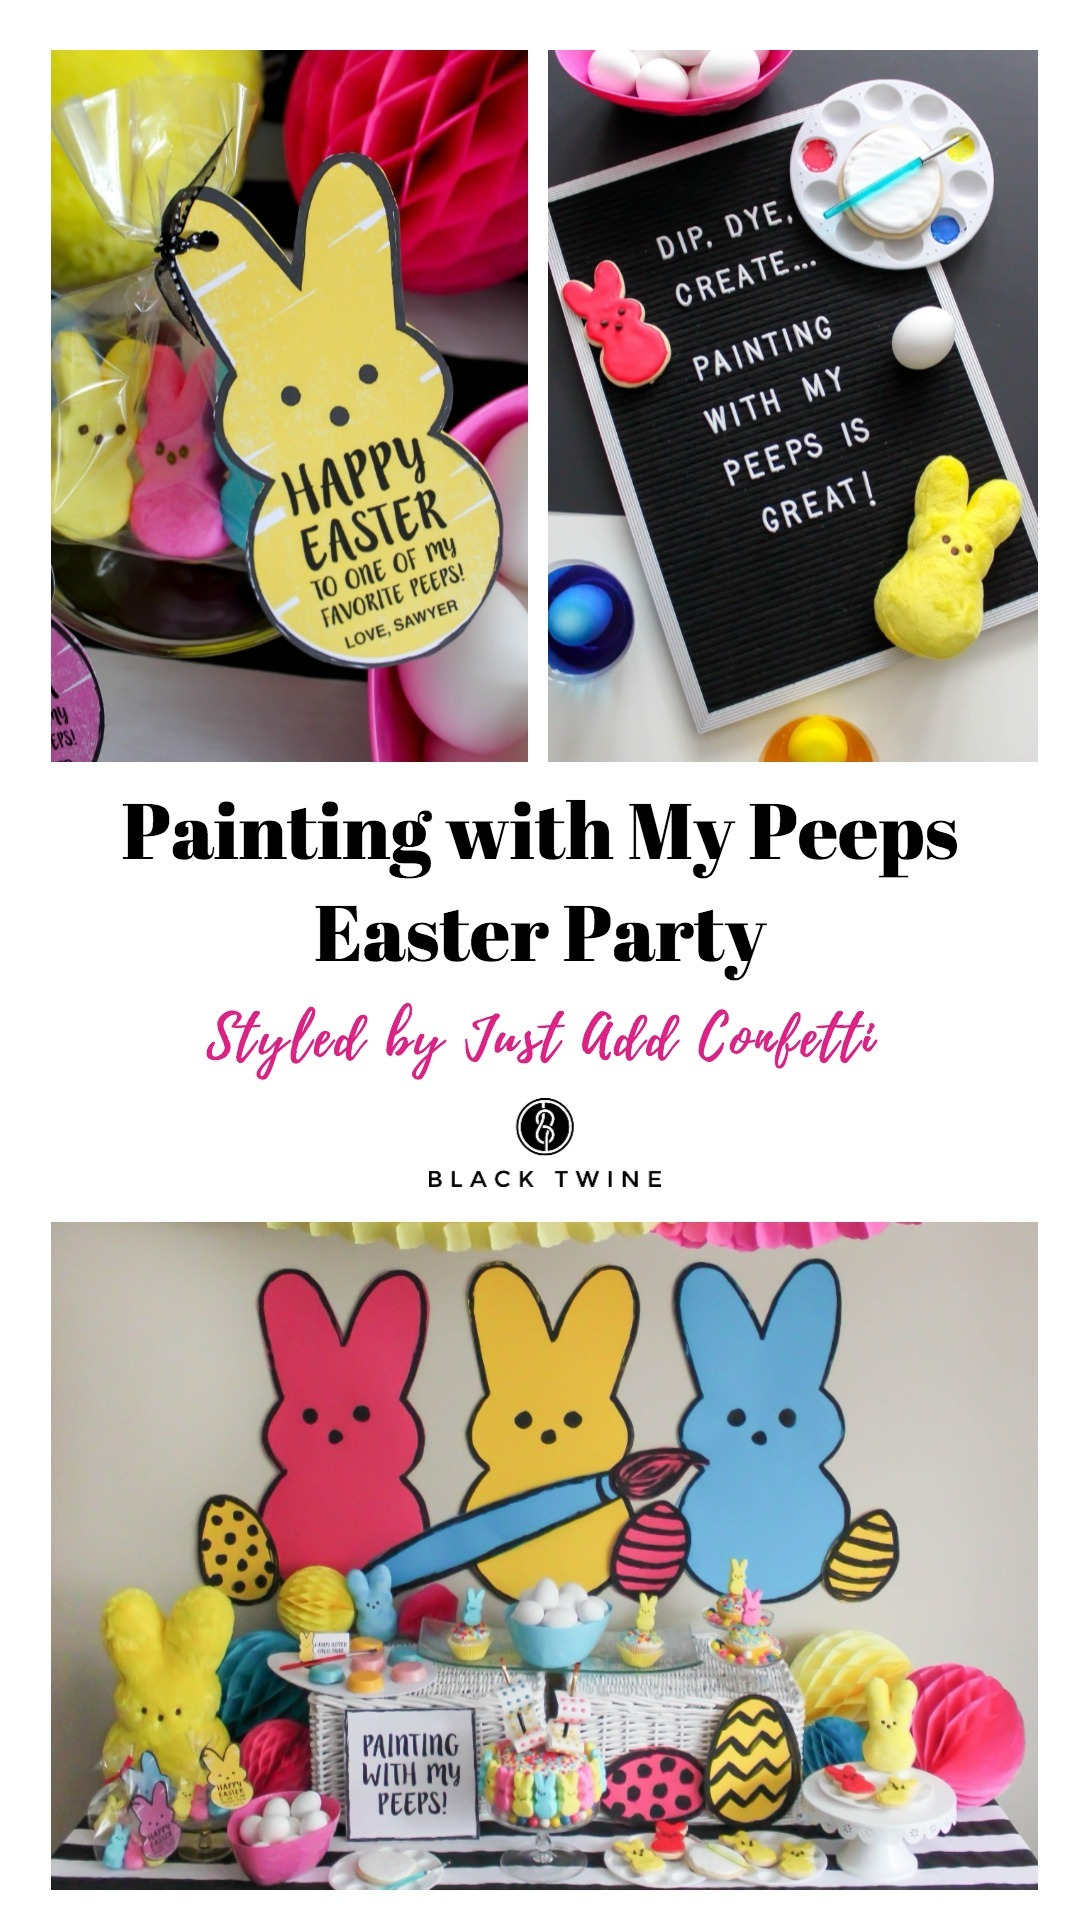 How to Host a Peeps Easter Party Styled by Just Add Confetti | Black Twine